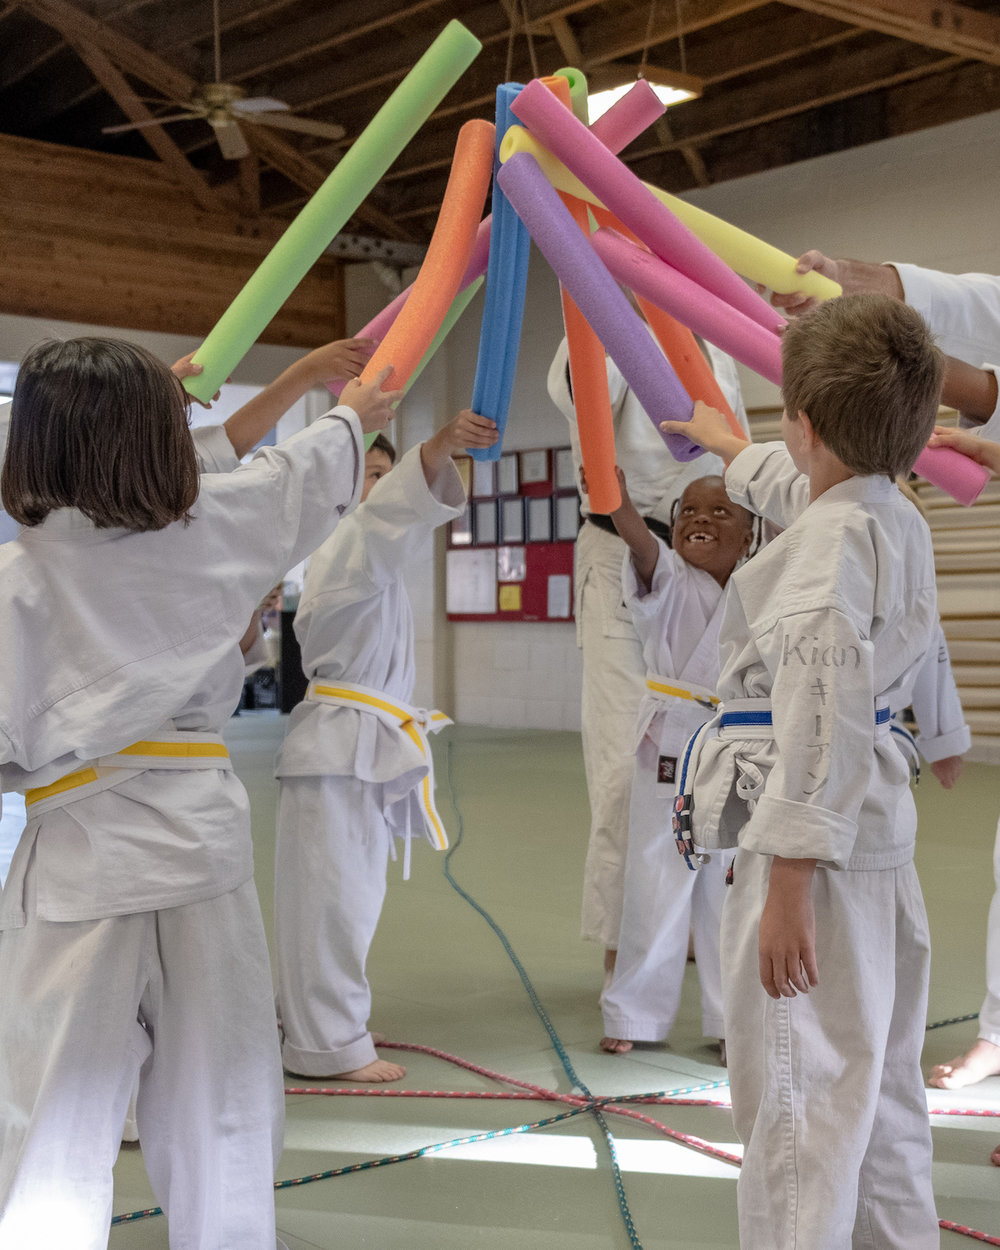 SUPERHERO - Children ages 4 to 6 are welcome to participate in our superhero class. Our goal is for them to learn how to relate to others. They learn how to work together and be part of a group as they begin to understand the basic principles of aikido. The best way for your child to understand aikido and our superhero class is for you to bring them to one of our classes. This way, you can both observe a class. Contact us today to set up an appointment.